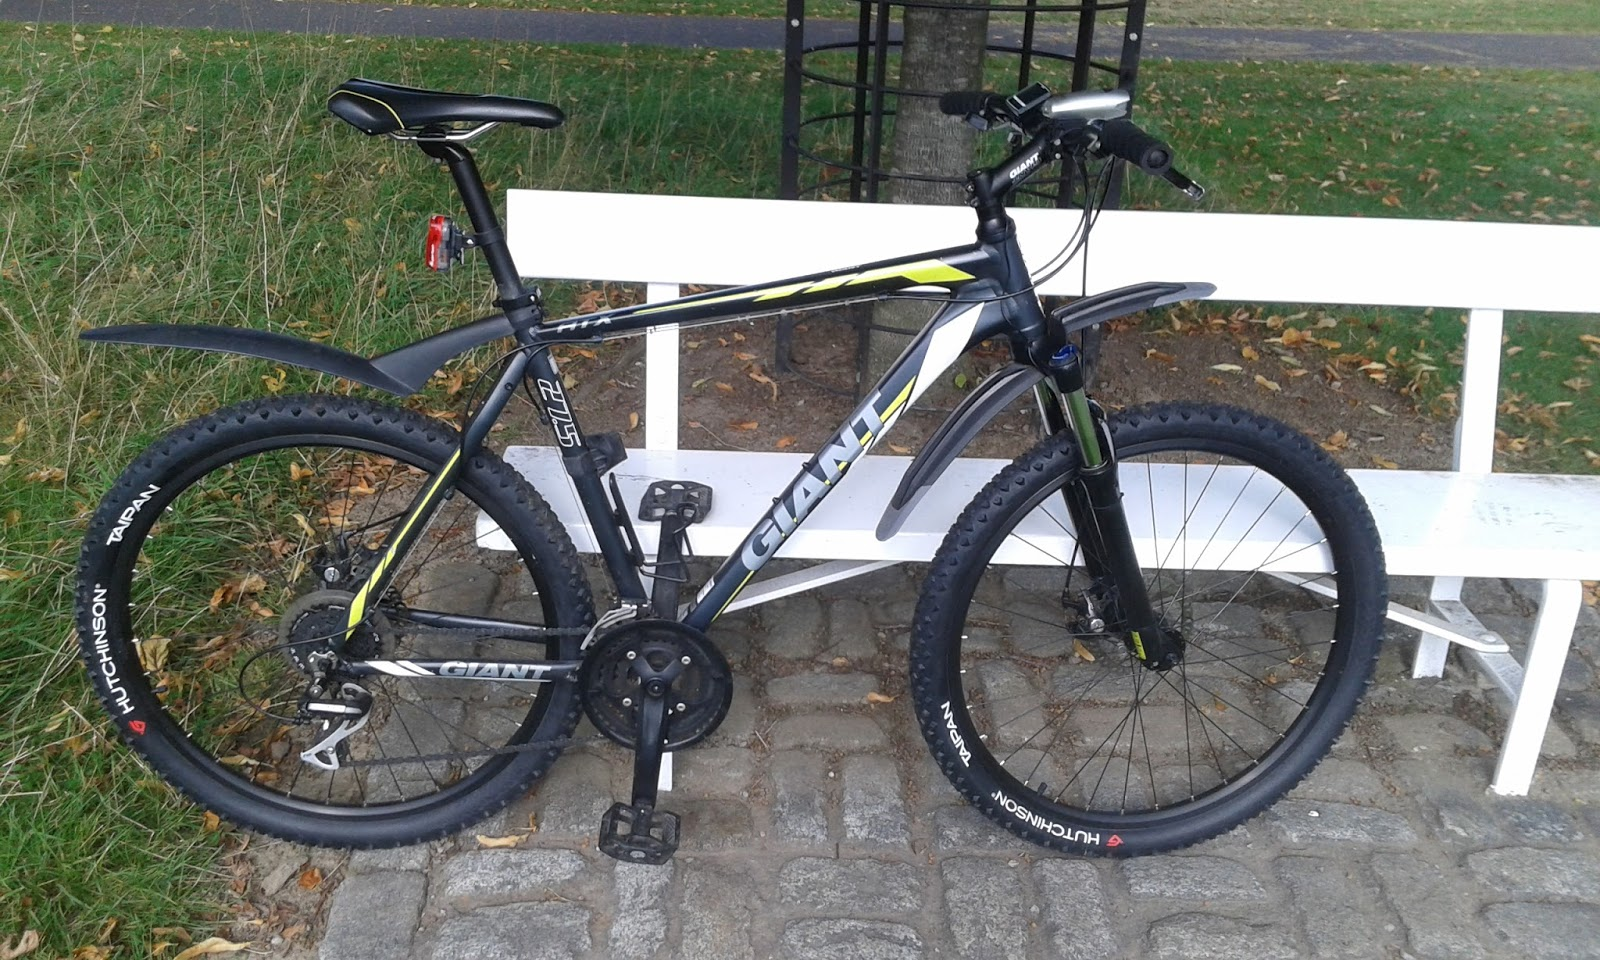 669c7fd1e96 Ireland's Premier Online Bicycle Register: Stolen Bicycle - Giant ...